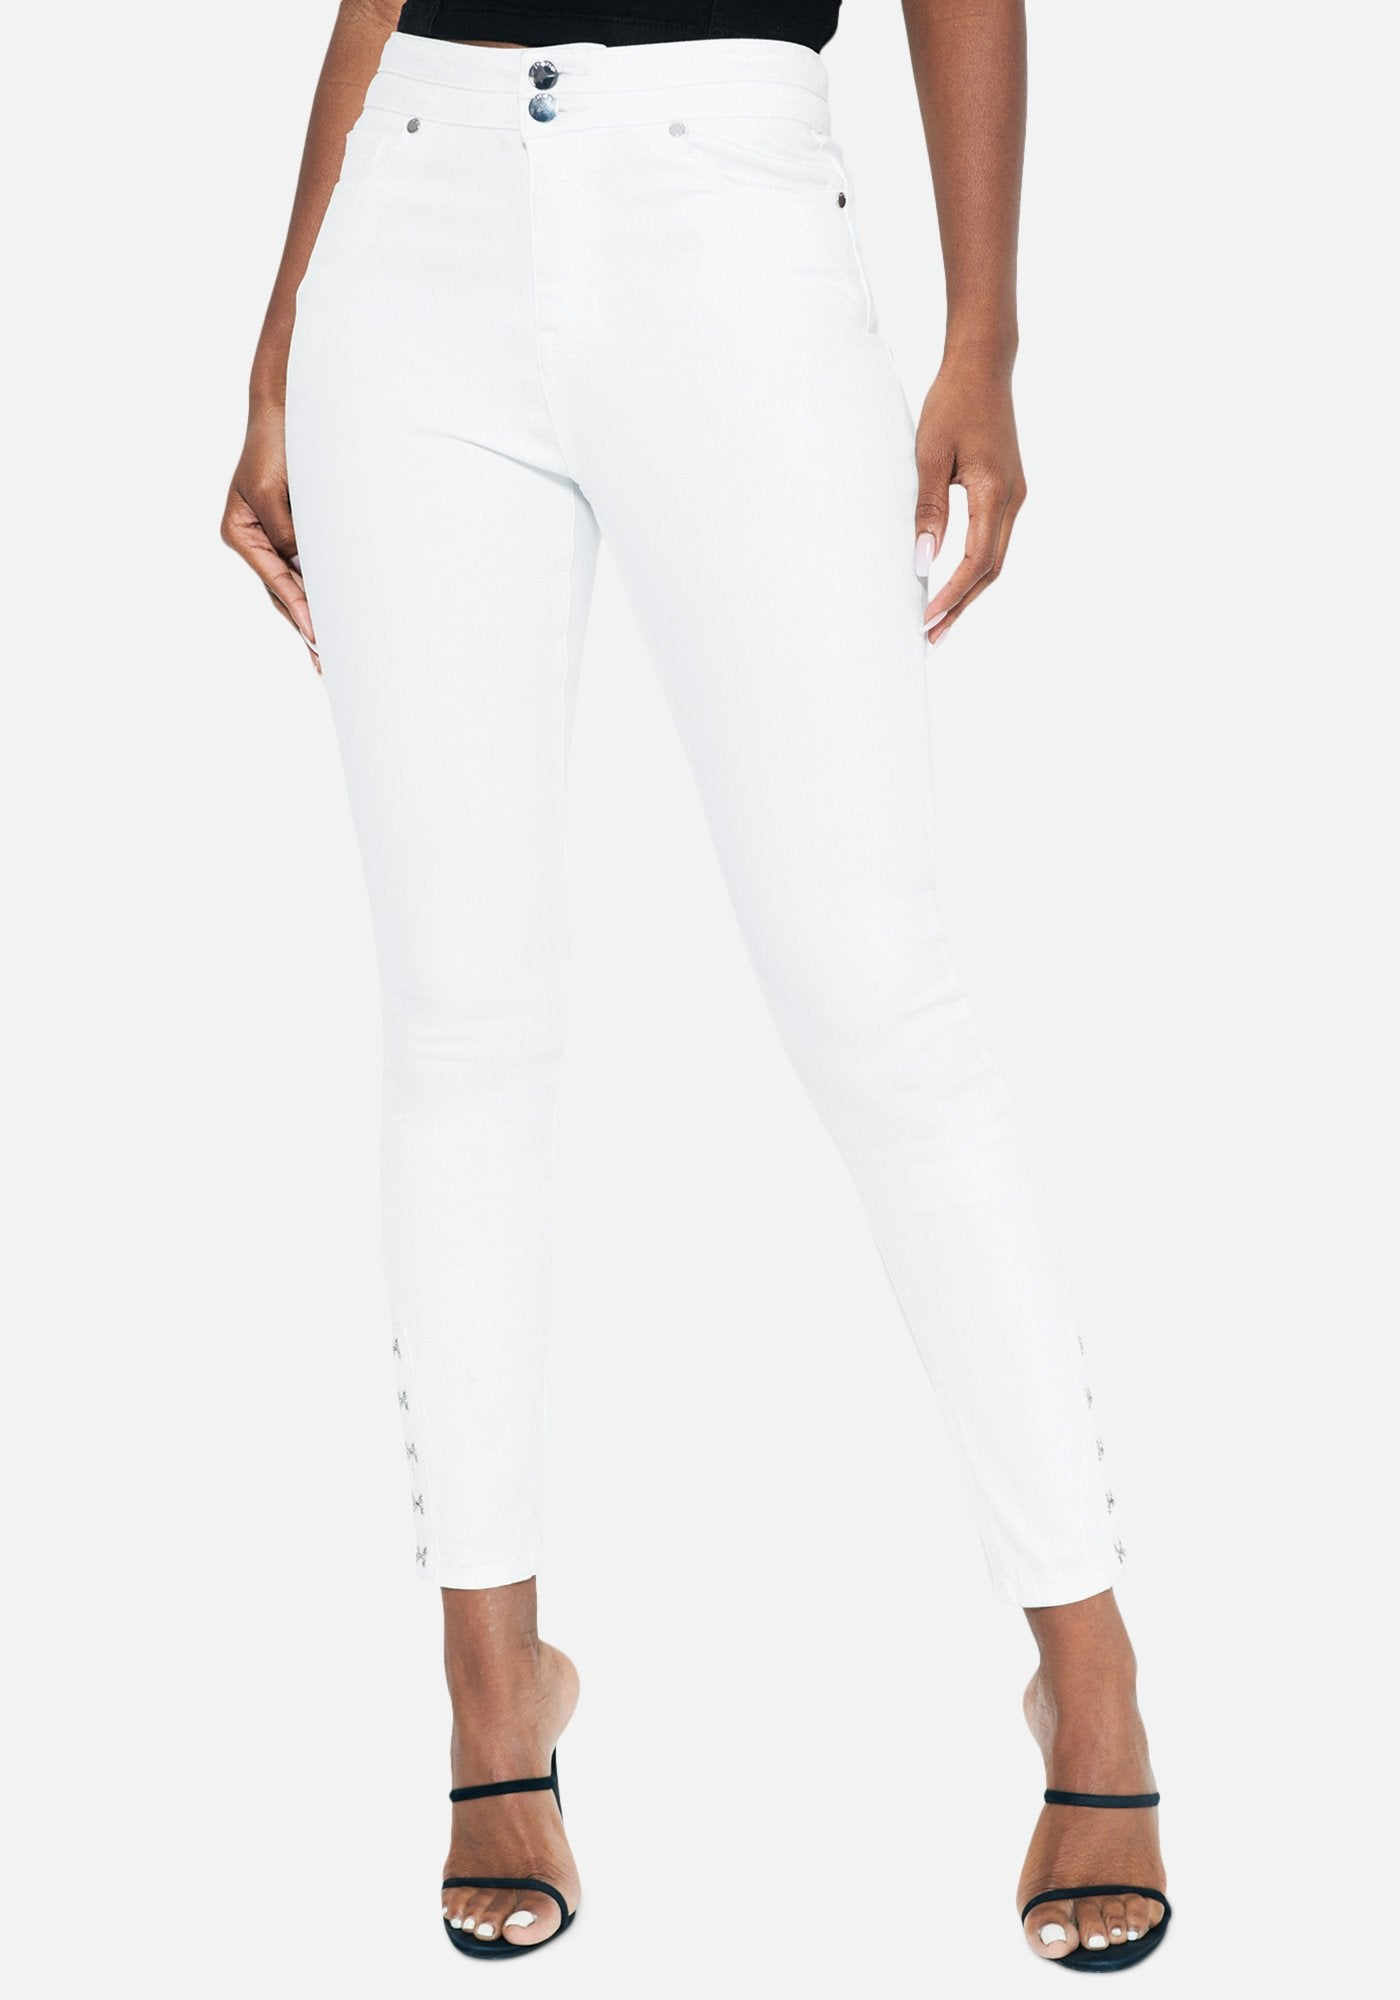 Bebe Women's Hook & Eye Detail Skinny Jeans, Size 25 in WHITE Cotton/Spandex